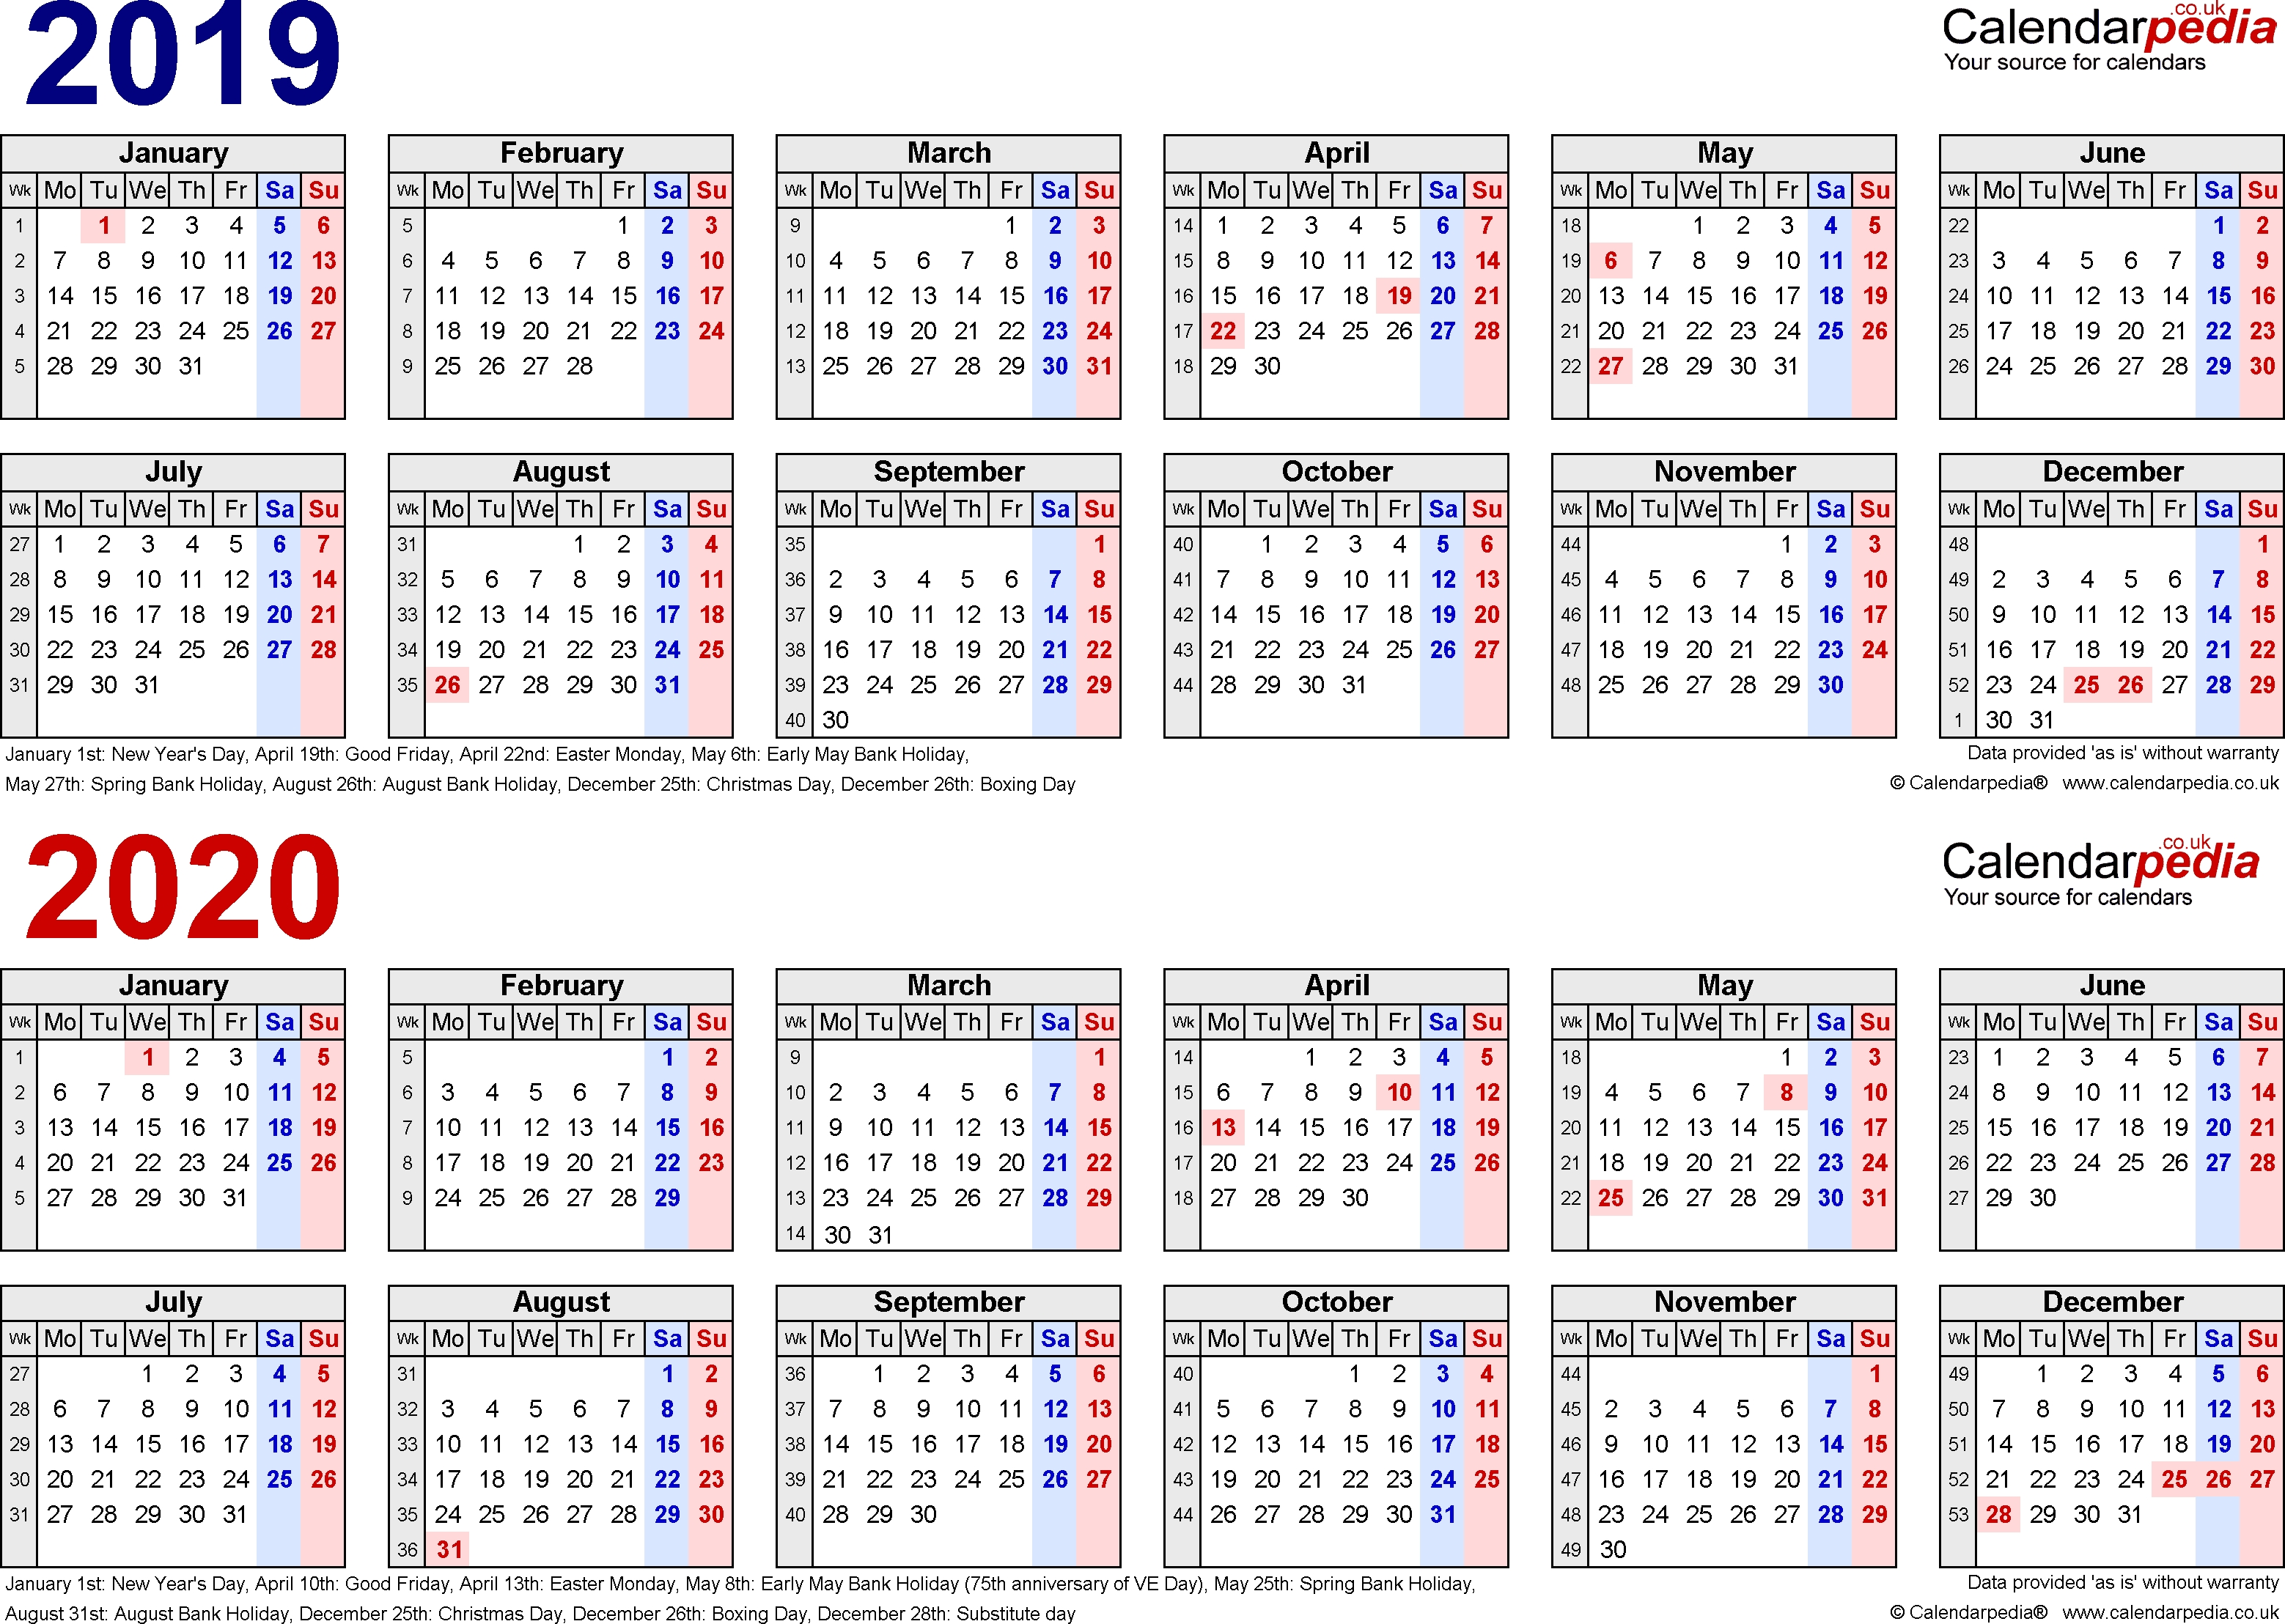 Two Year Calendars For 2019 & 2020 (Uk) For Pdf in Free Printaabke Calendars For 2019-2020